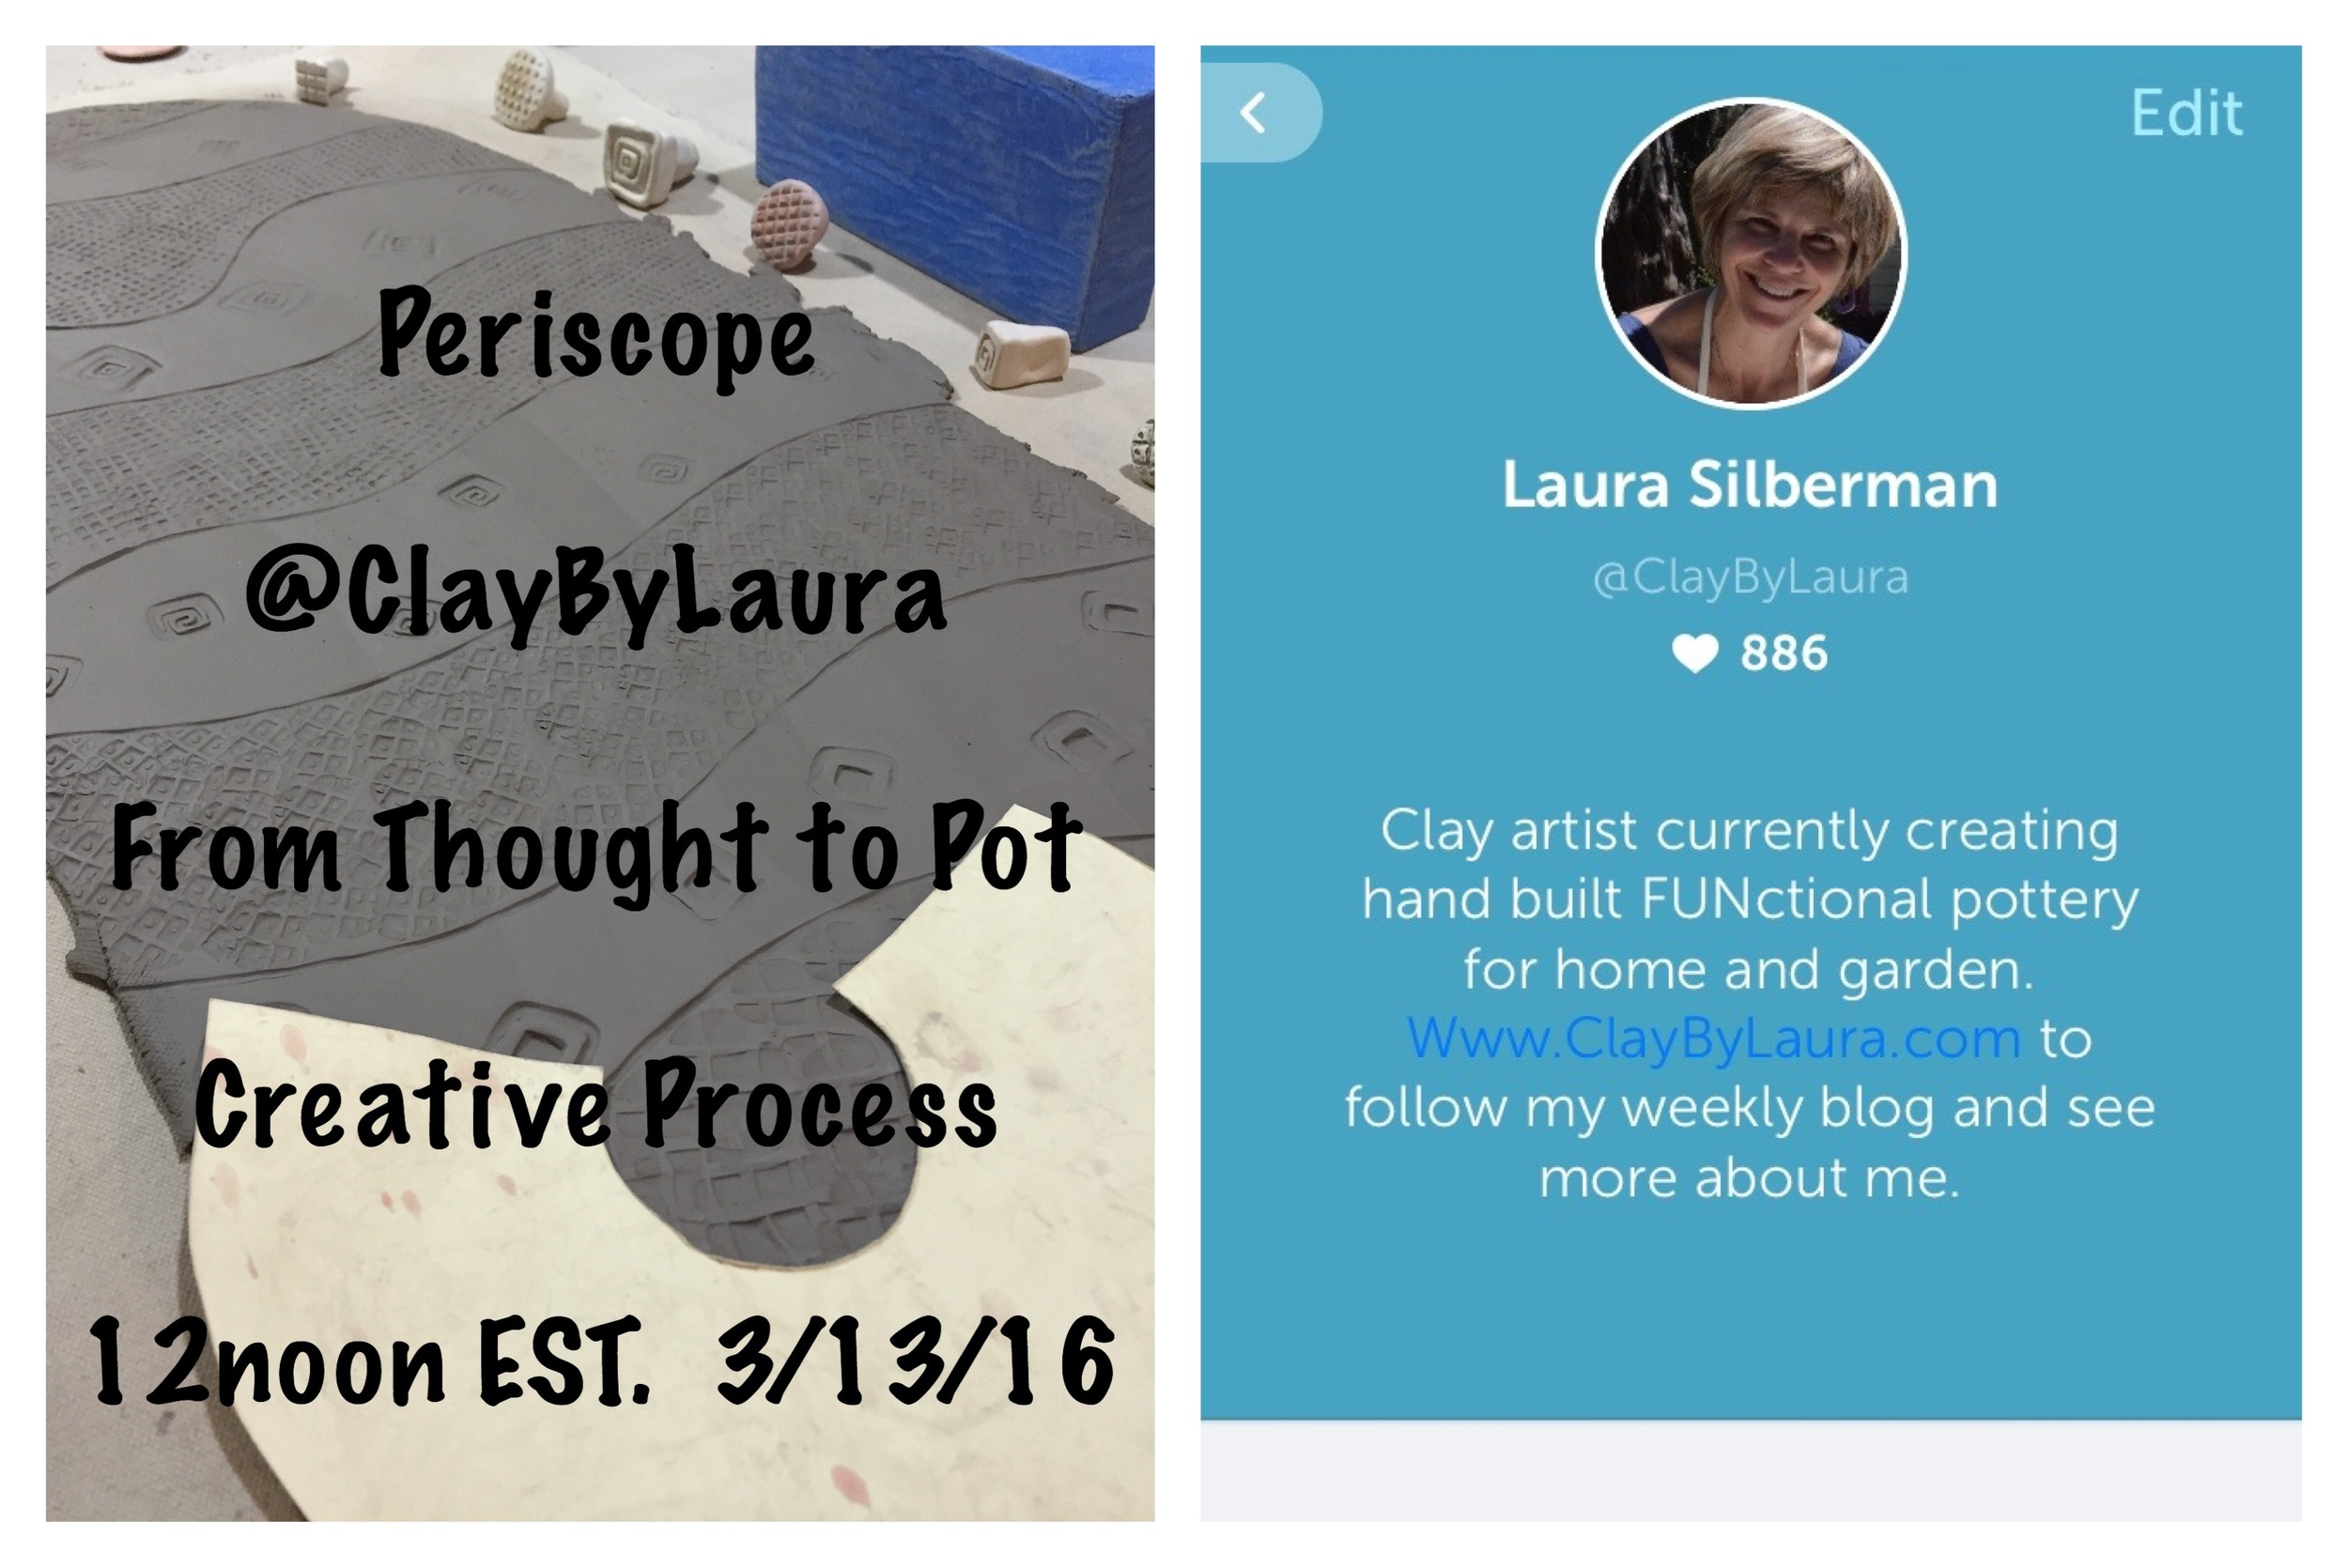 I've broadcast several times on Periscope. It's one more way to connect with an audience of peers and potential customers. Each Periscope experience has taught me how to improve my skills for the next time. It's been fun, rewarding and has become another tool to help grow my business. You can watch my broadcasts by downloading the  Periscope App  to your mobile or tablet device through ITunes.